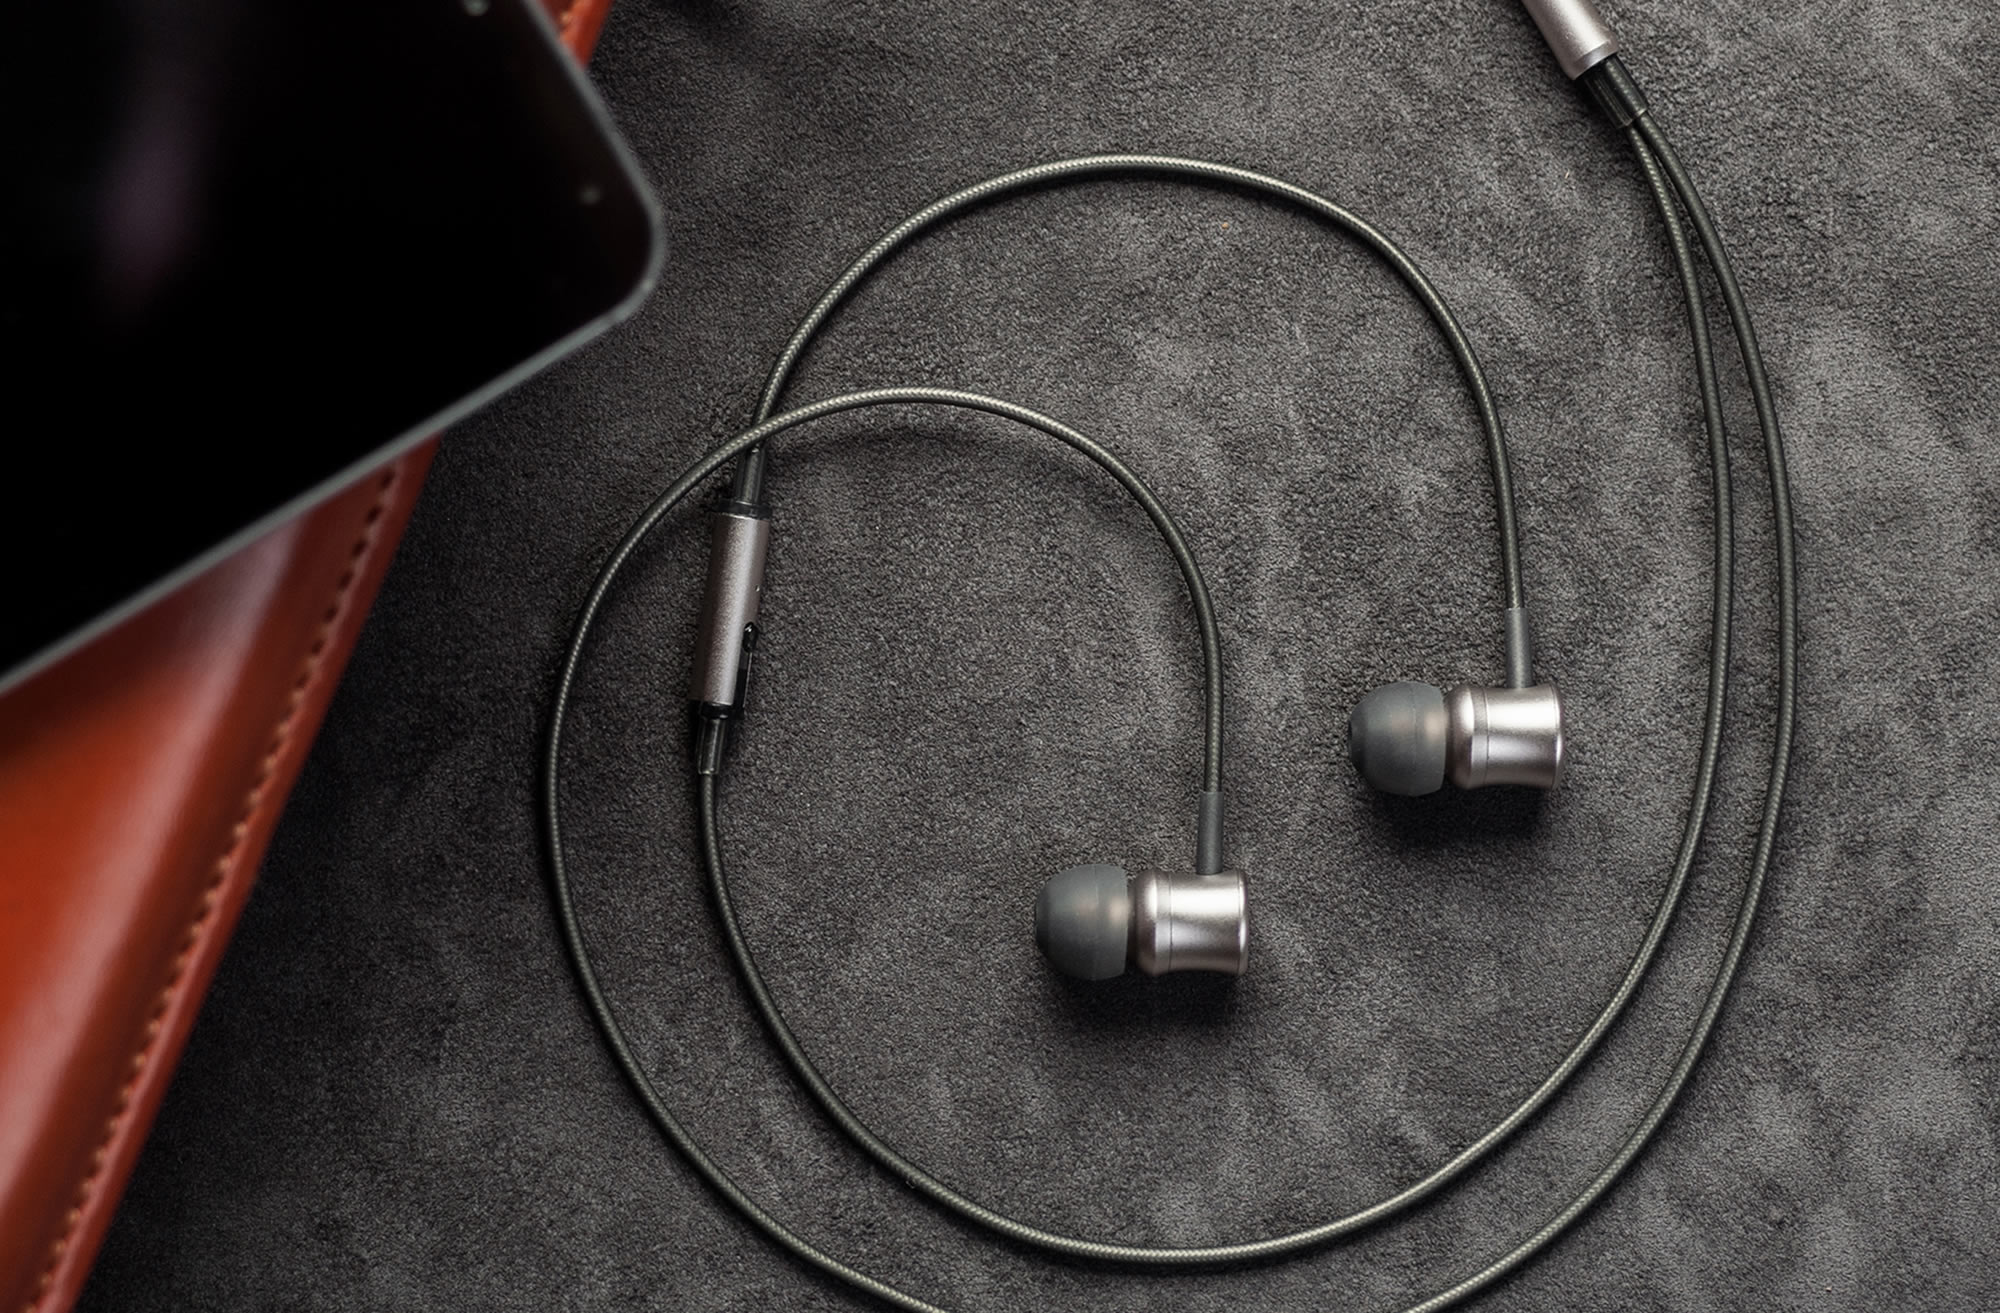 WIN! Meze 11 Neo Iridium Finish Earphones